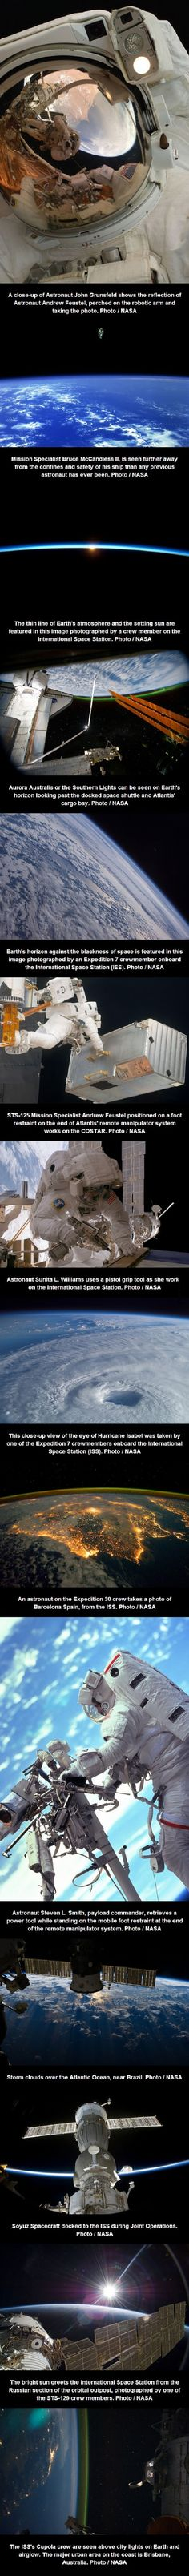 Photos released by NASA